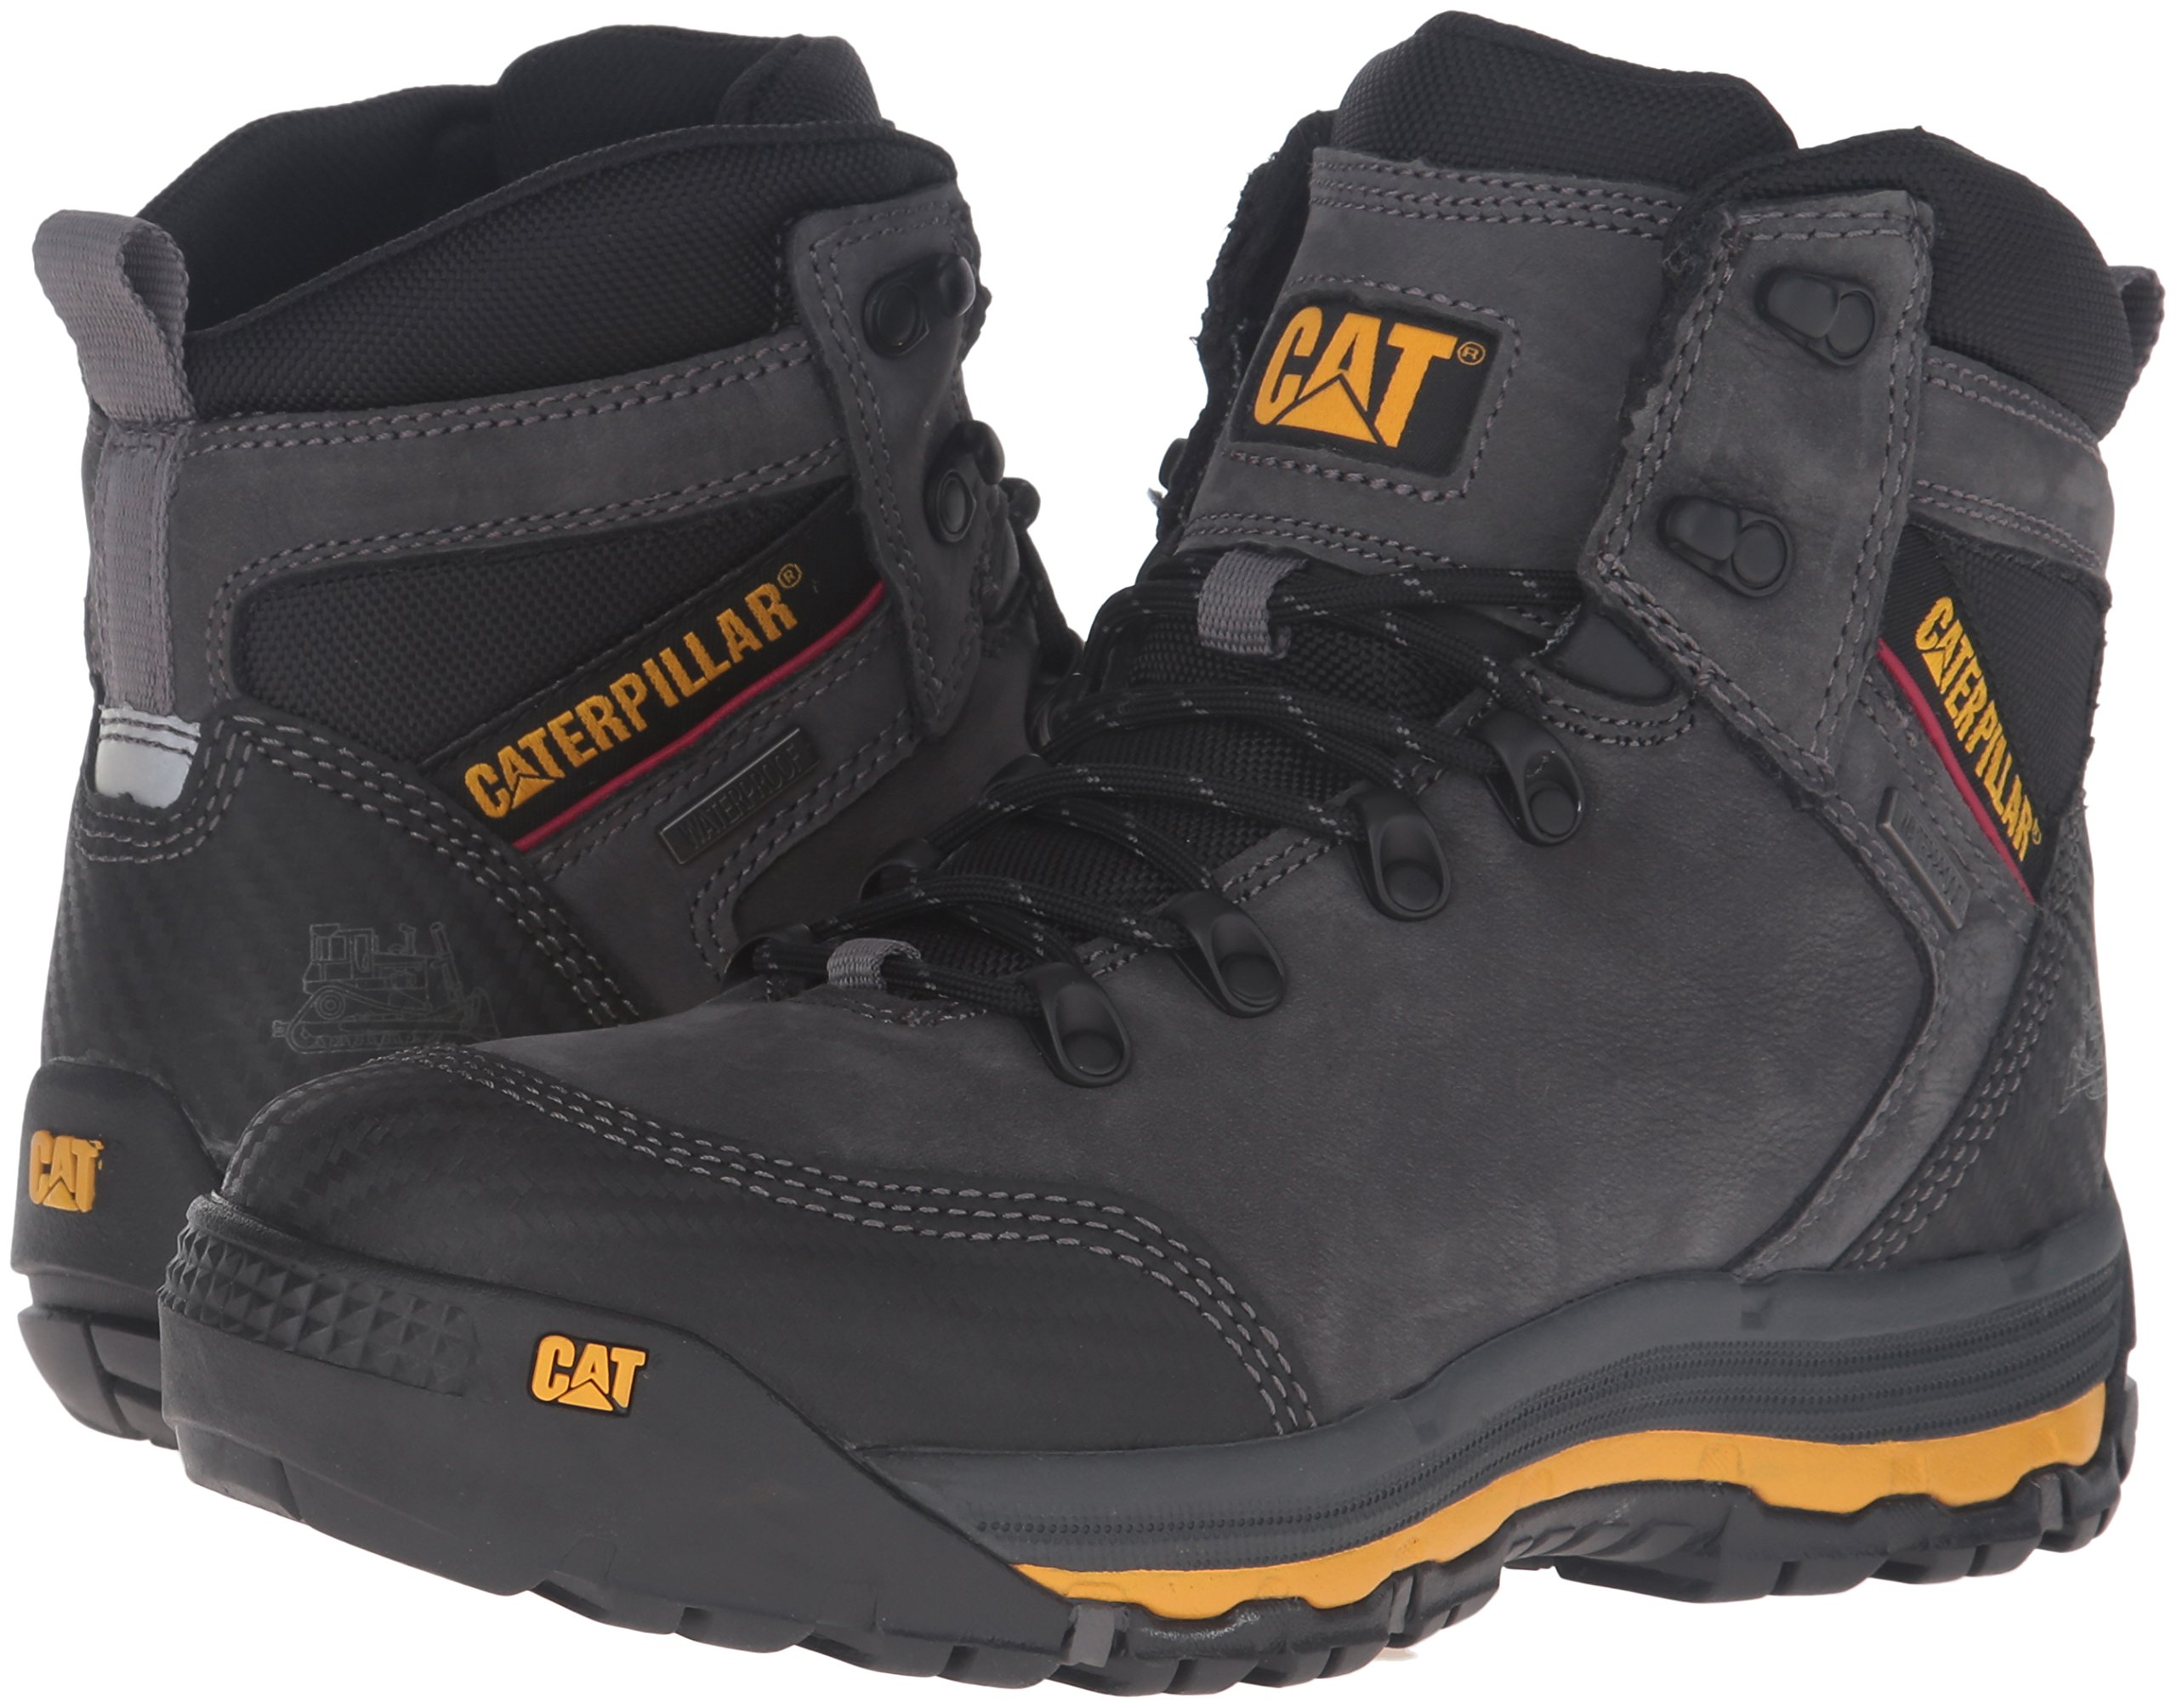 Caterpillar Men's Munising 6'' Waterproof Industrial and Construction Shoe, Dark Shadow, 13 M US by Caterpillar (Image #6)